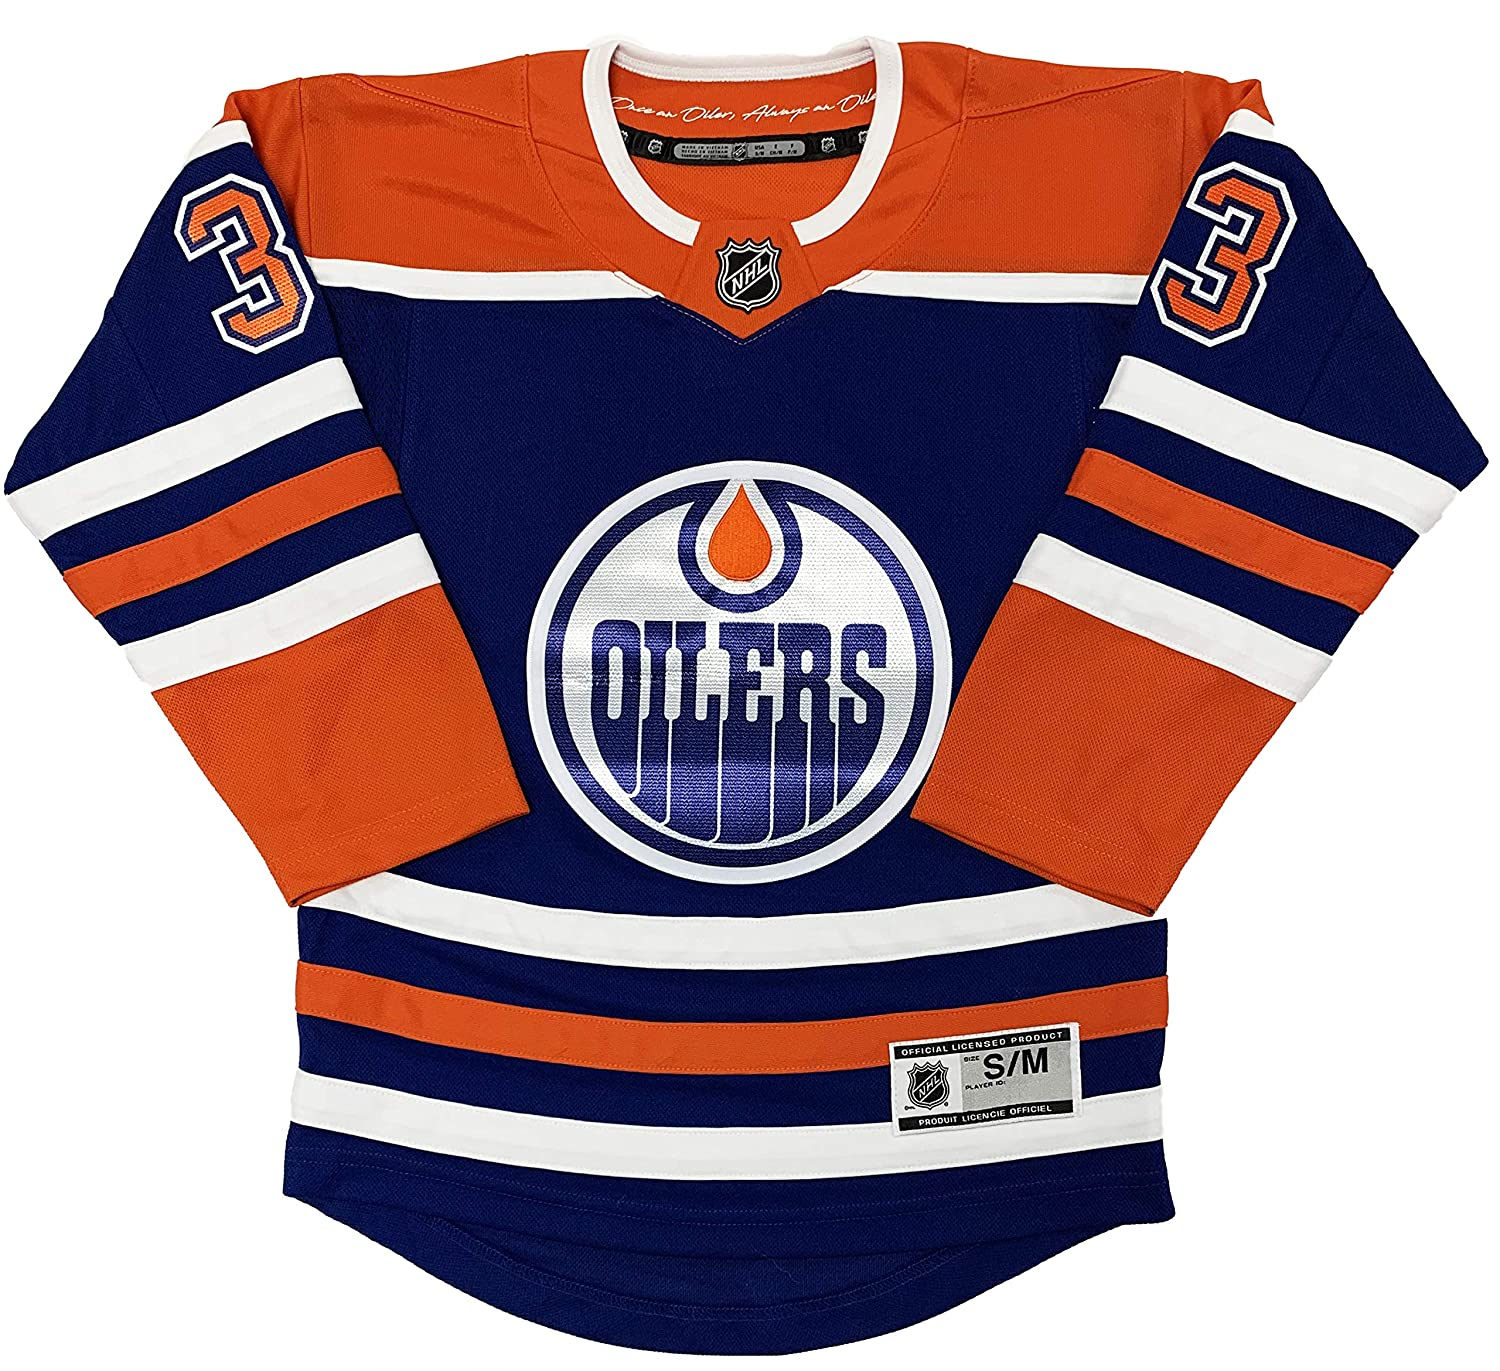 online retailer 74b05 ced47 Amazon.com: Cam Talbot Edmonton Oilers Blue Youth Alternate ...